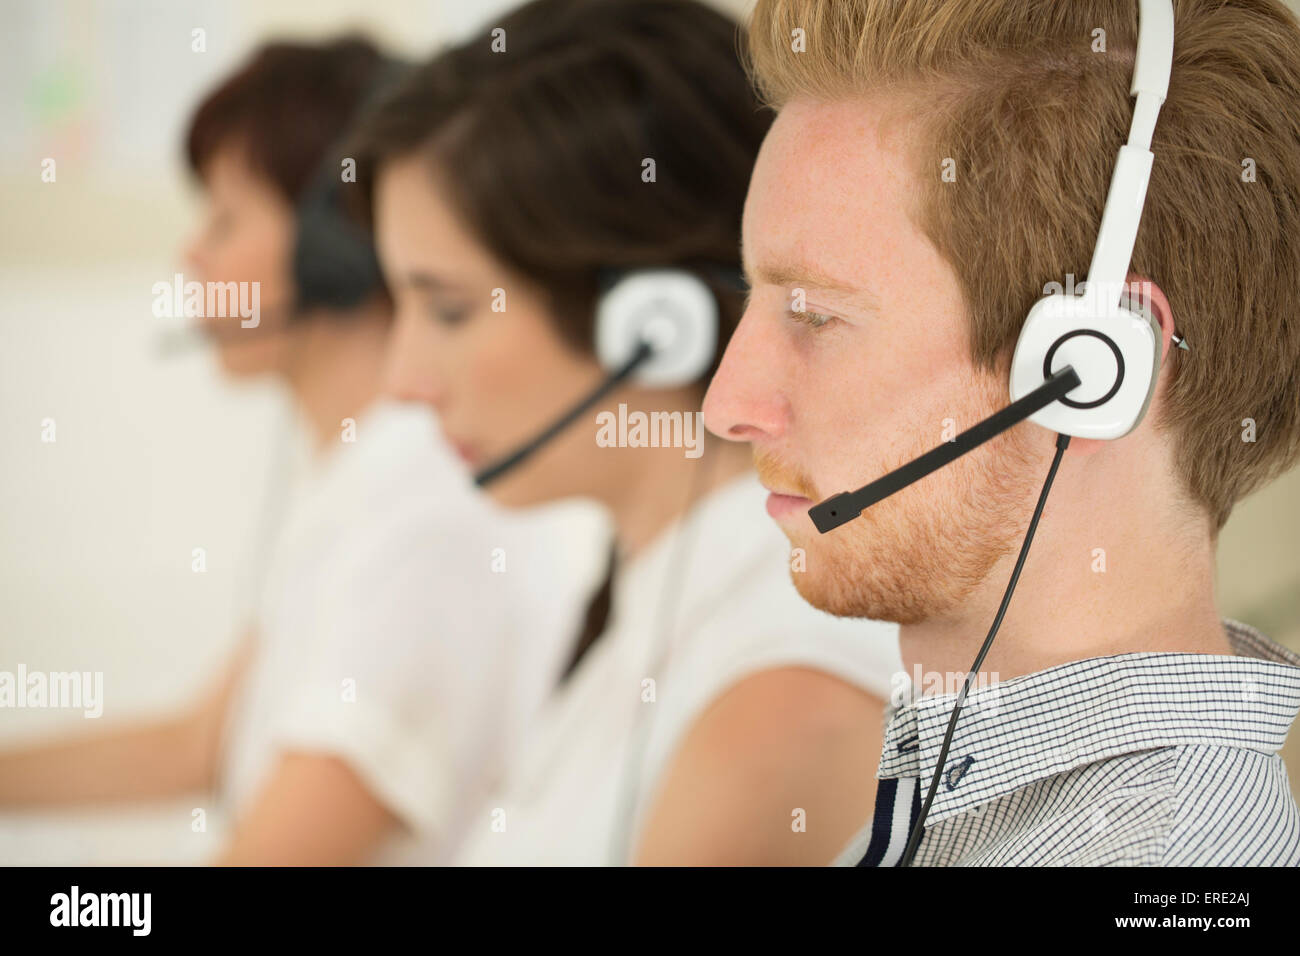 Close up of business people wearing headsets Banque D'Images